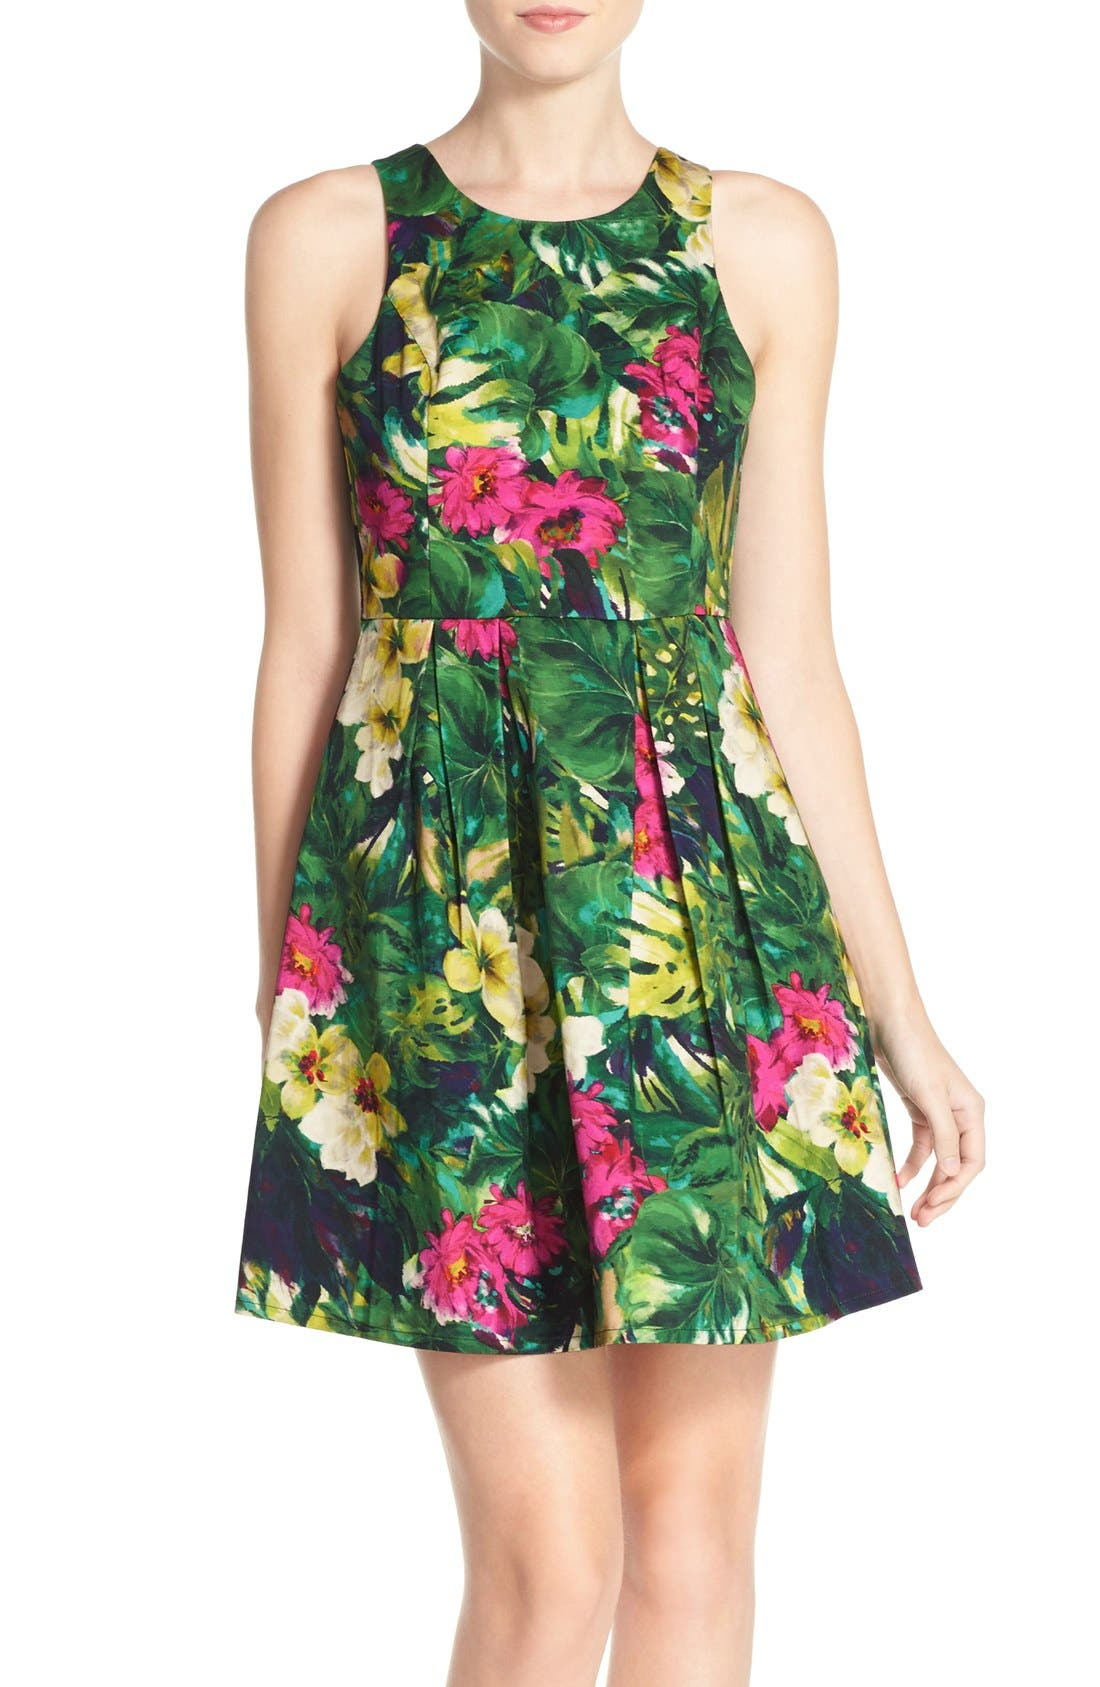 Alternate Image 1 Selected - Felicity & Coco Floral Print Fit & Flare Dress (Regular & Petite) (Nordstrom Exclusive)